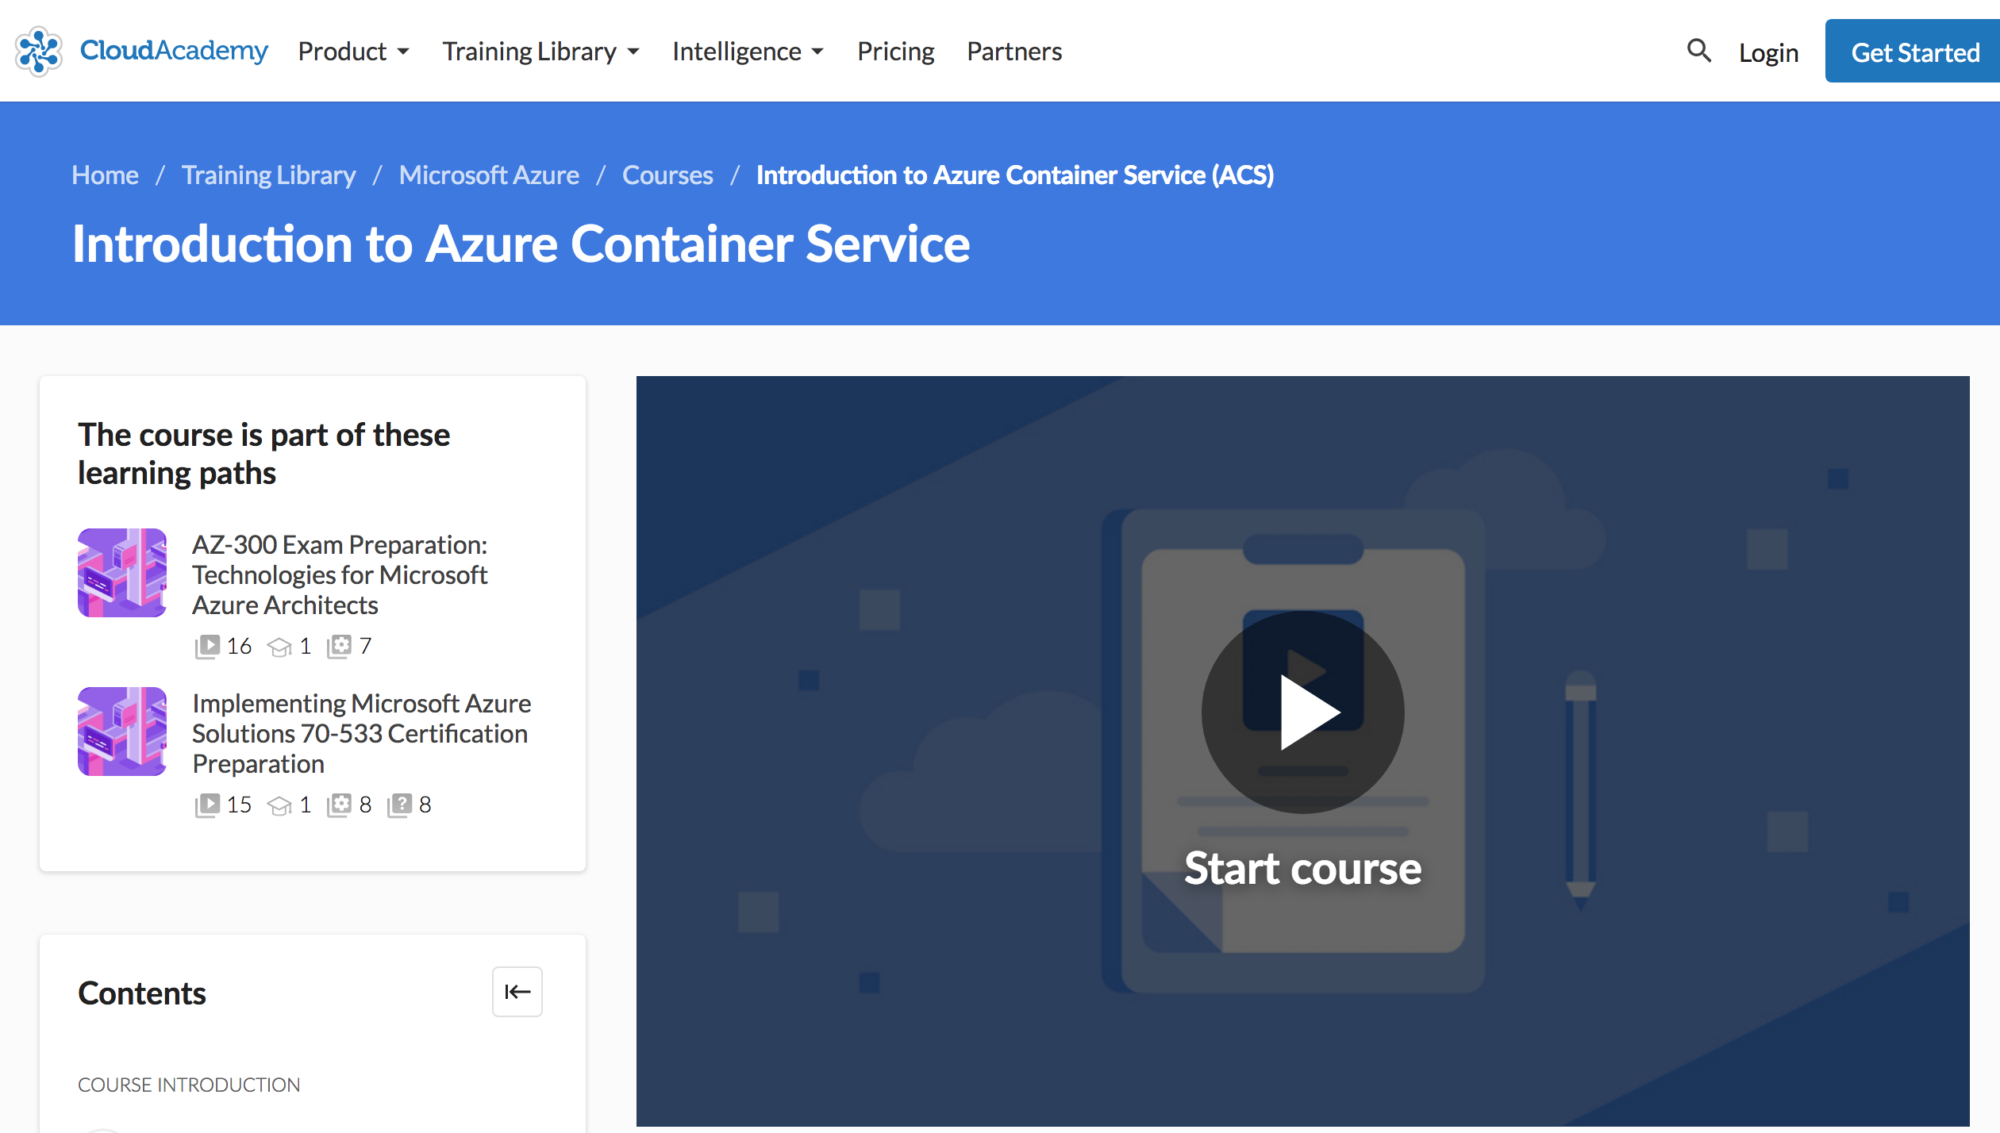 Introduction to Azure Container Service course